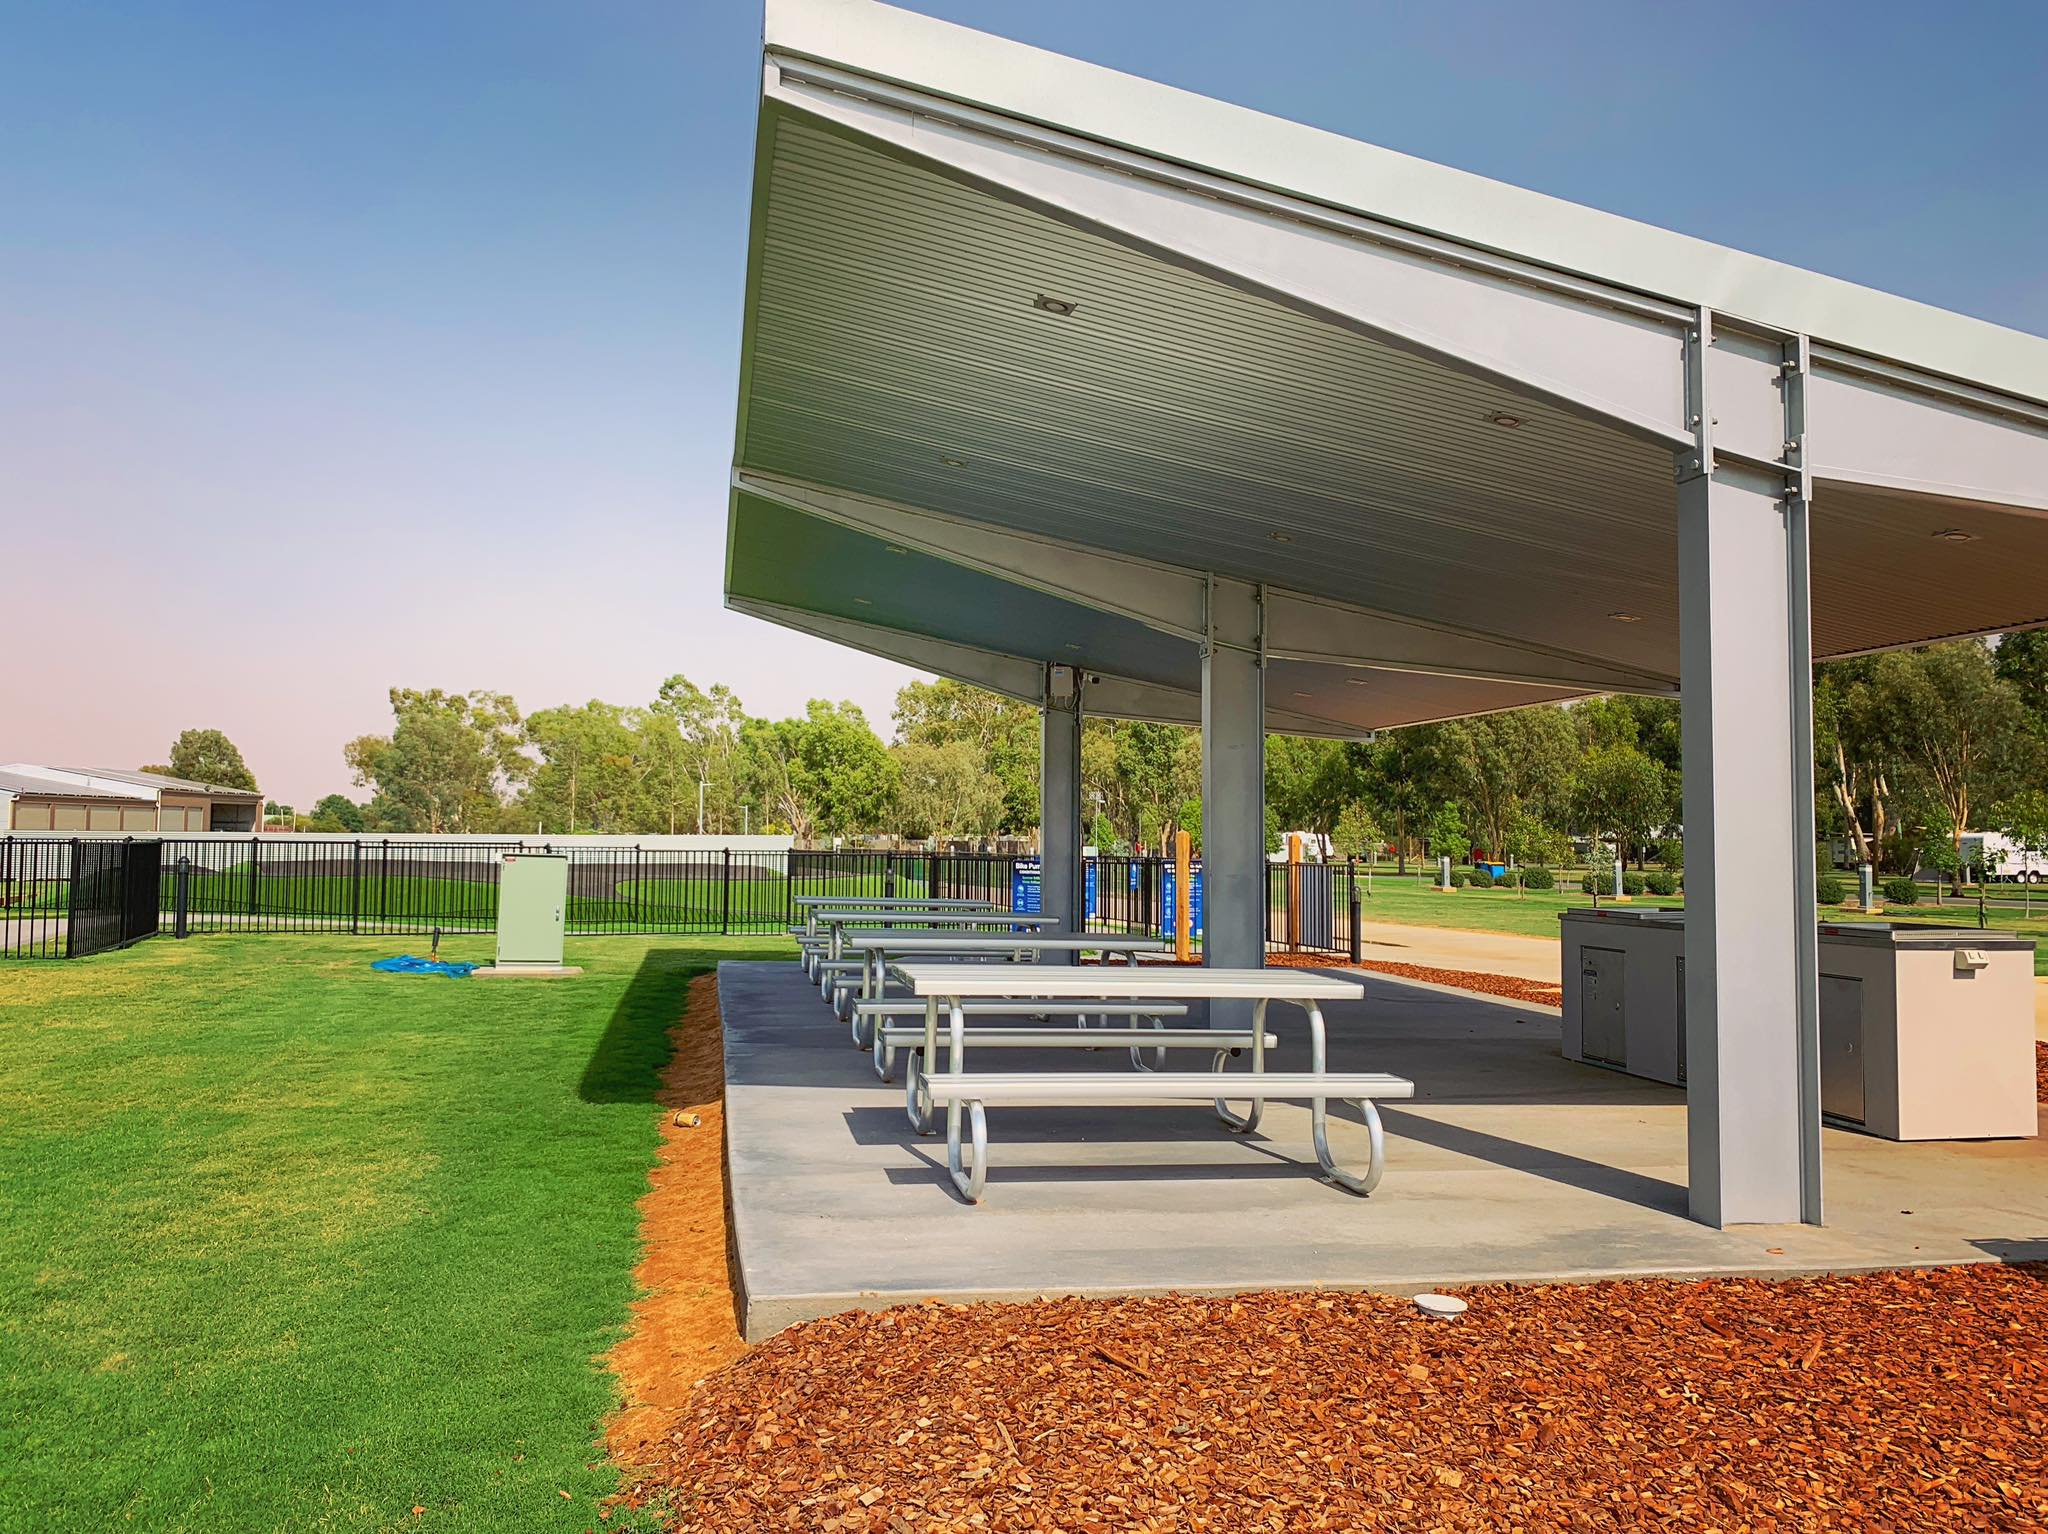 Four stainless steel dinettes sheltered beneath a two-barbecue cooking area at BIG4 Deniliquin Holiday Park